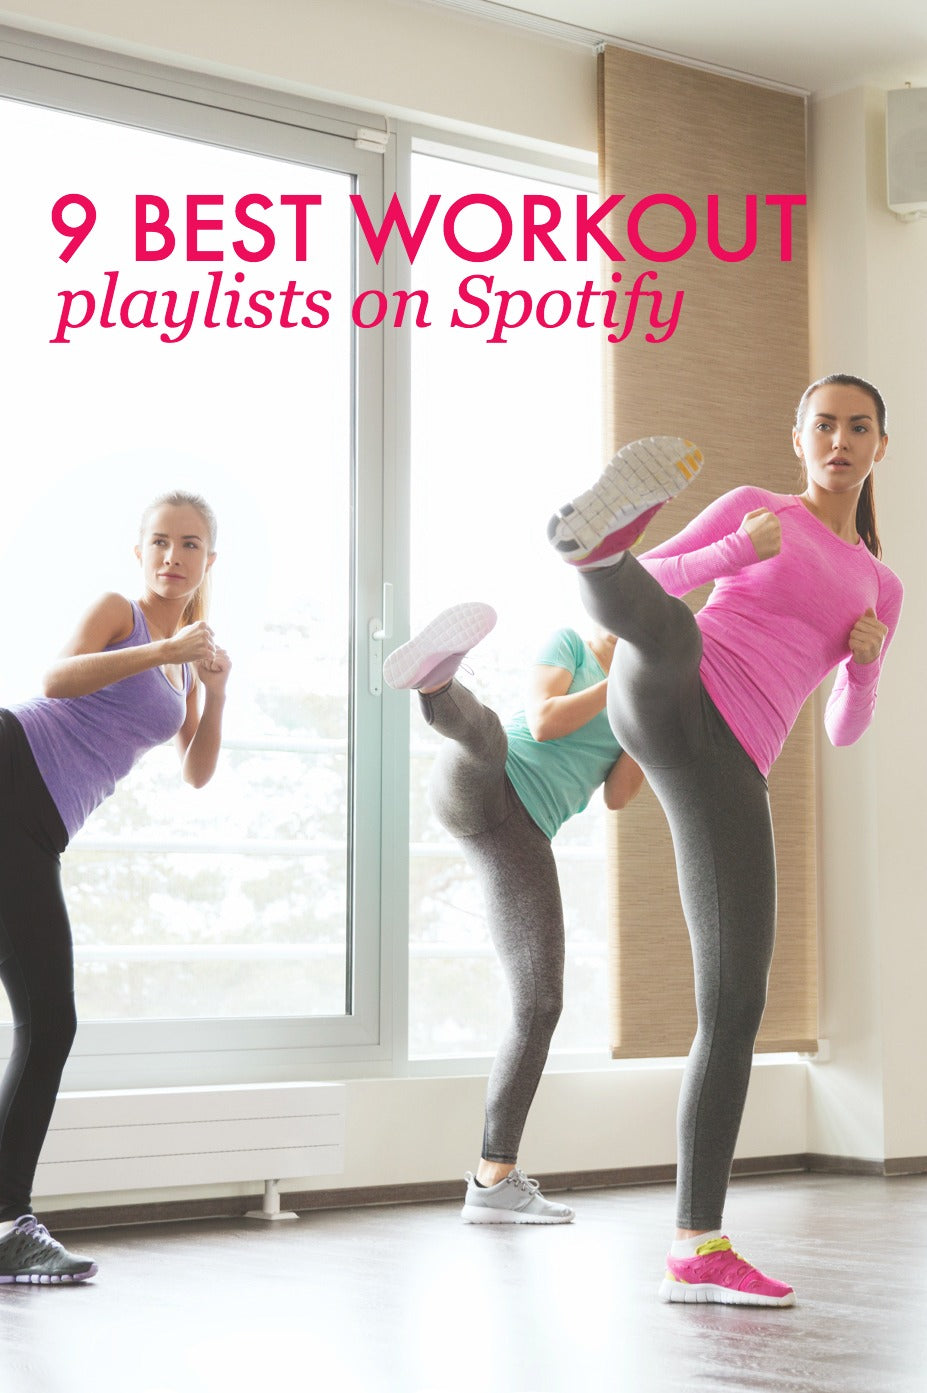 These 9 best workout playlists on Spotify will keep you motivated!